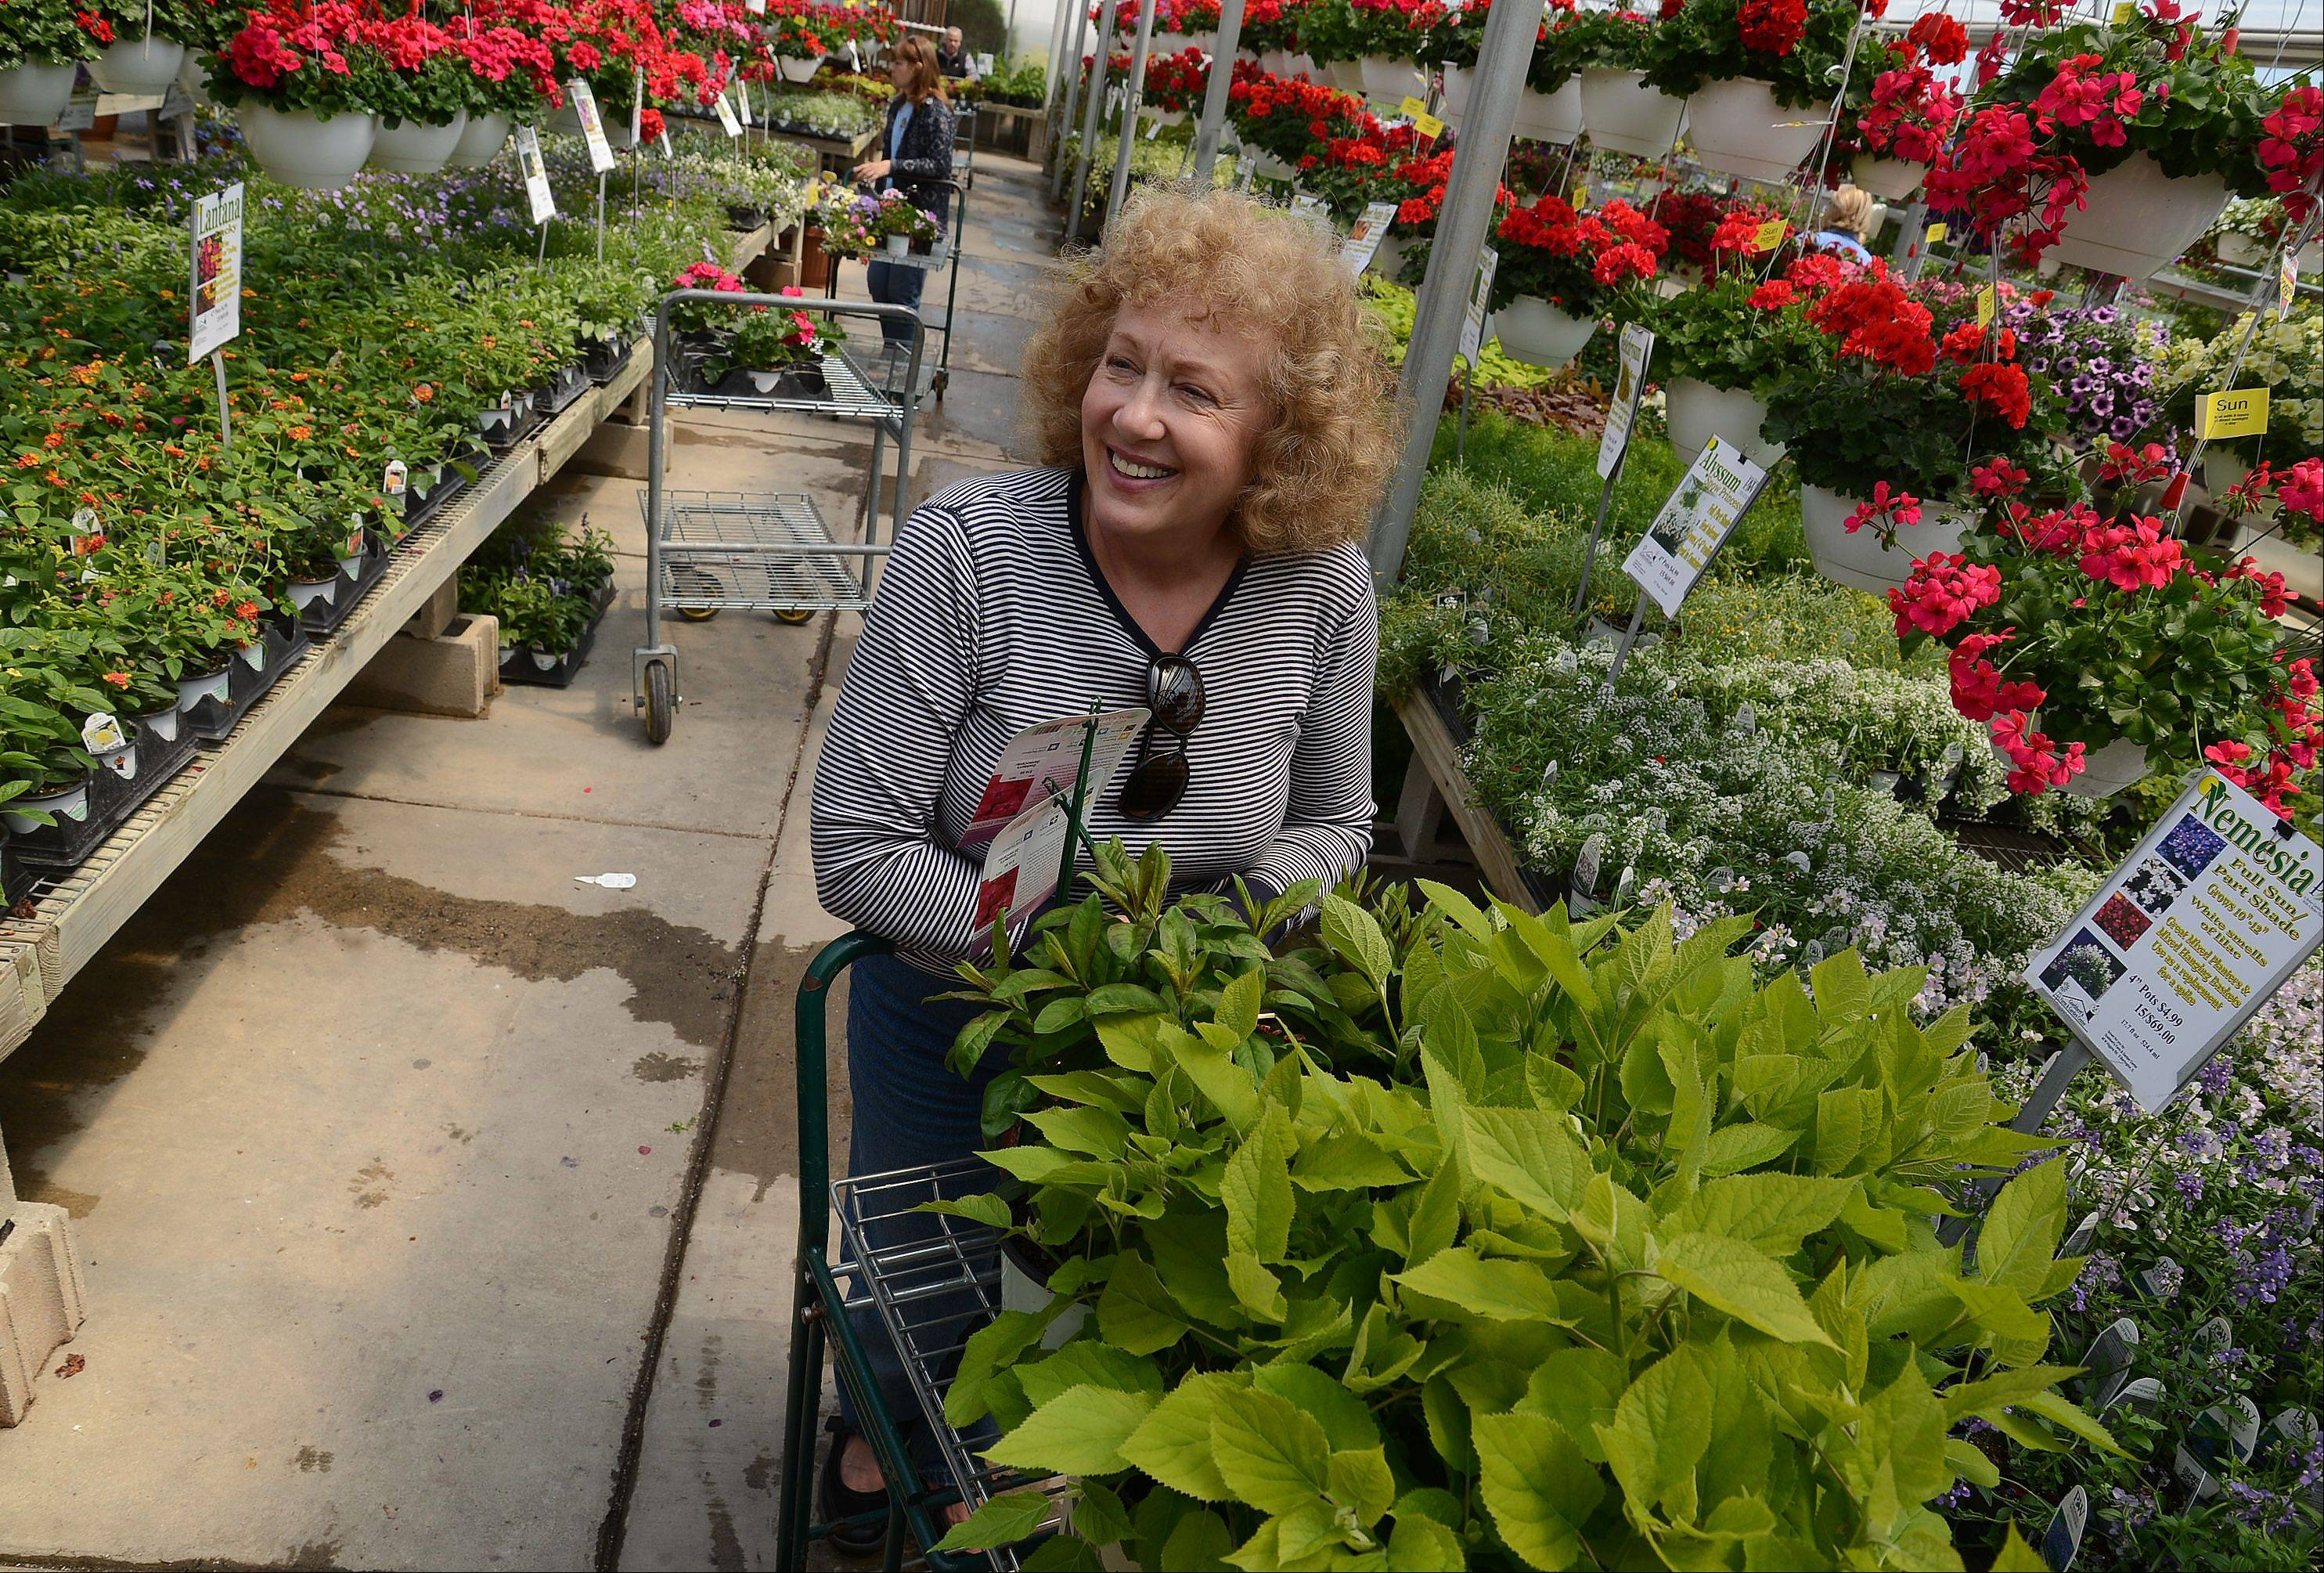 Today's warm-up is welcome news to gardener Doreen Kwasek of South Barrington, who stocks up on hydrangeas at Goebbert's Farm & Garden Center in South Barrington. While Mother's Day is a traditional planting day, Monday morning's frost forced gardeners to postpone their plantings.